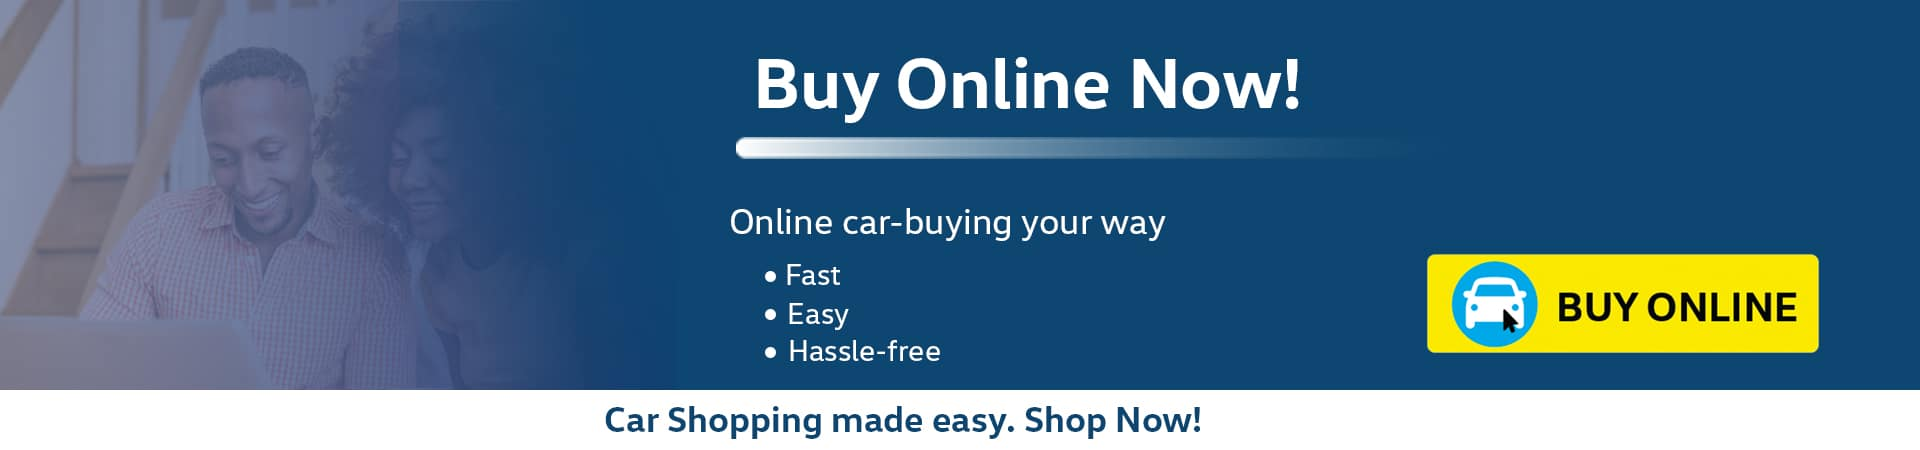 VW Homepage Banner